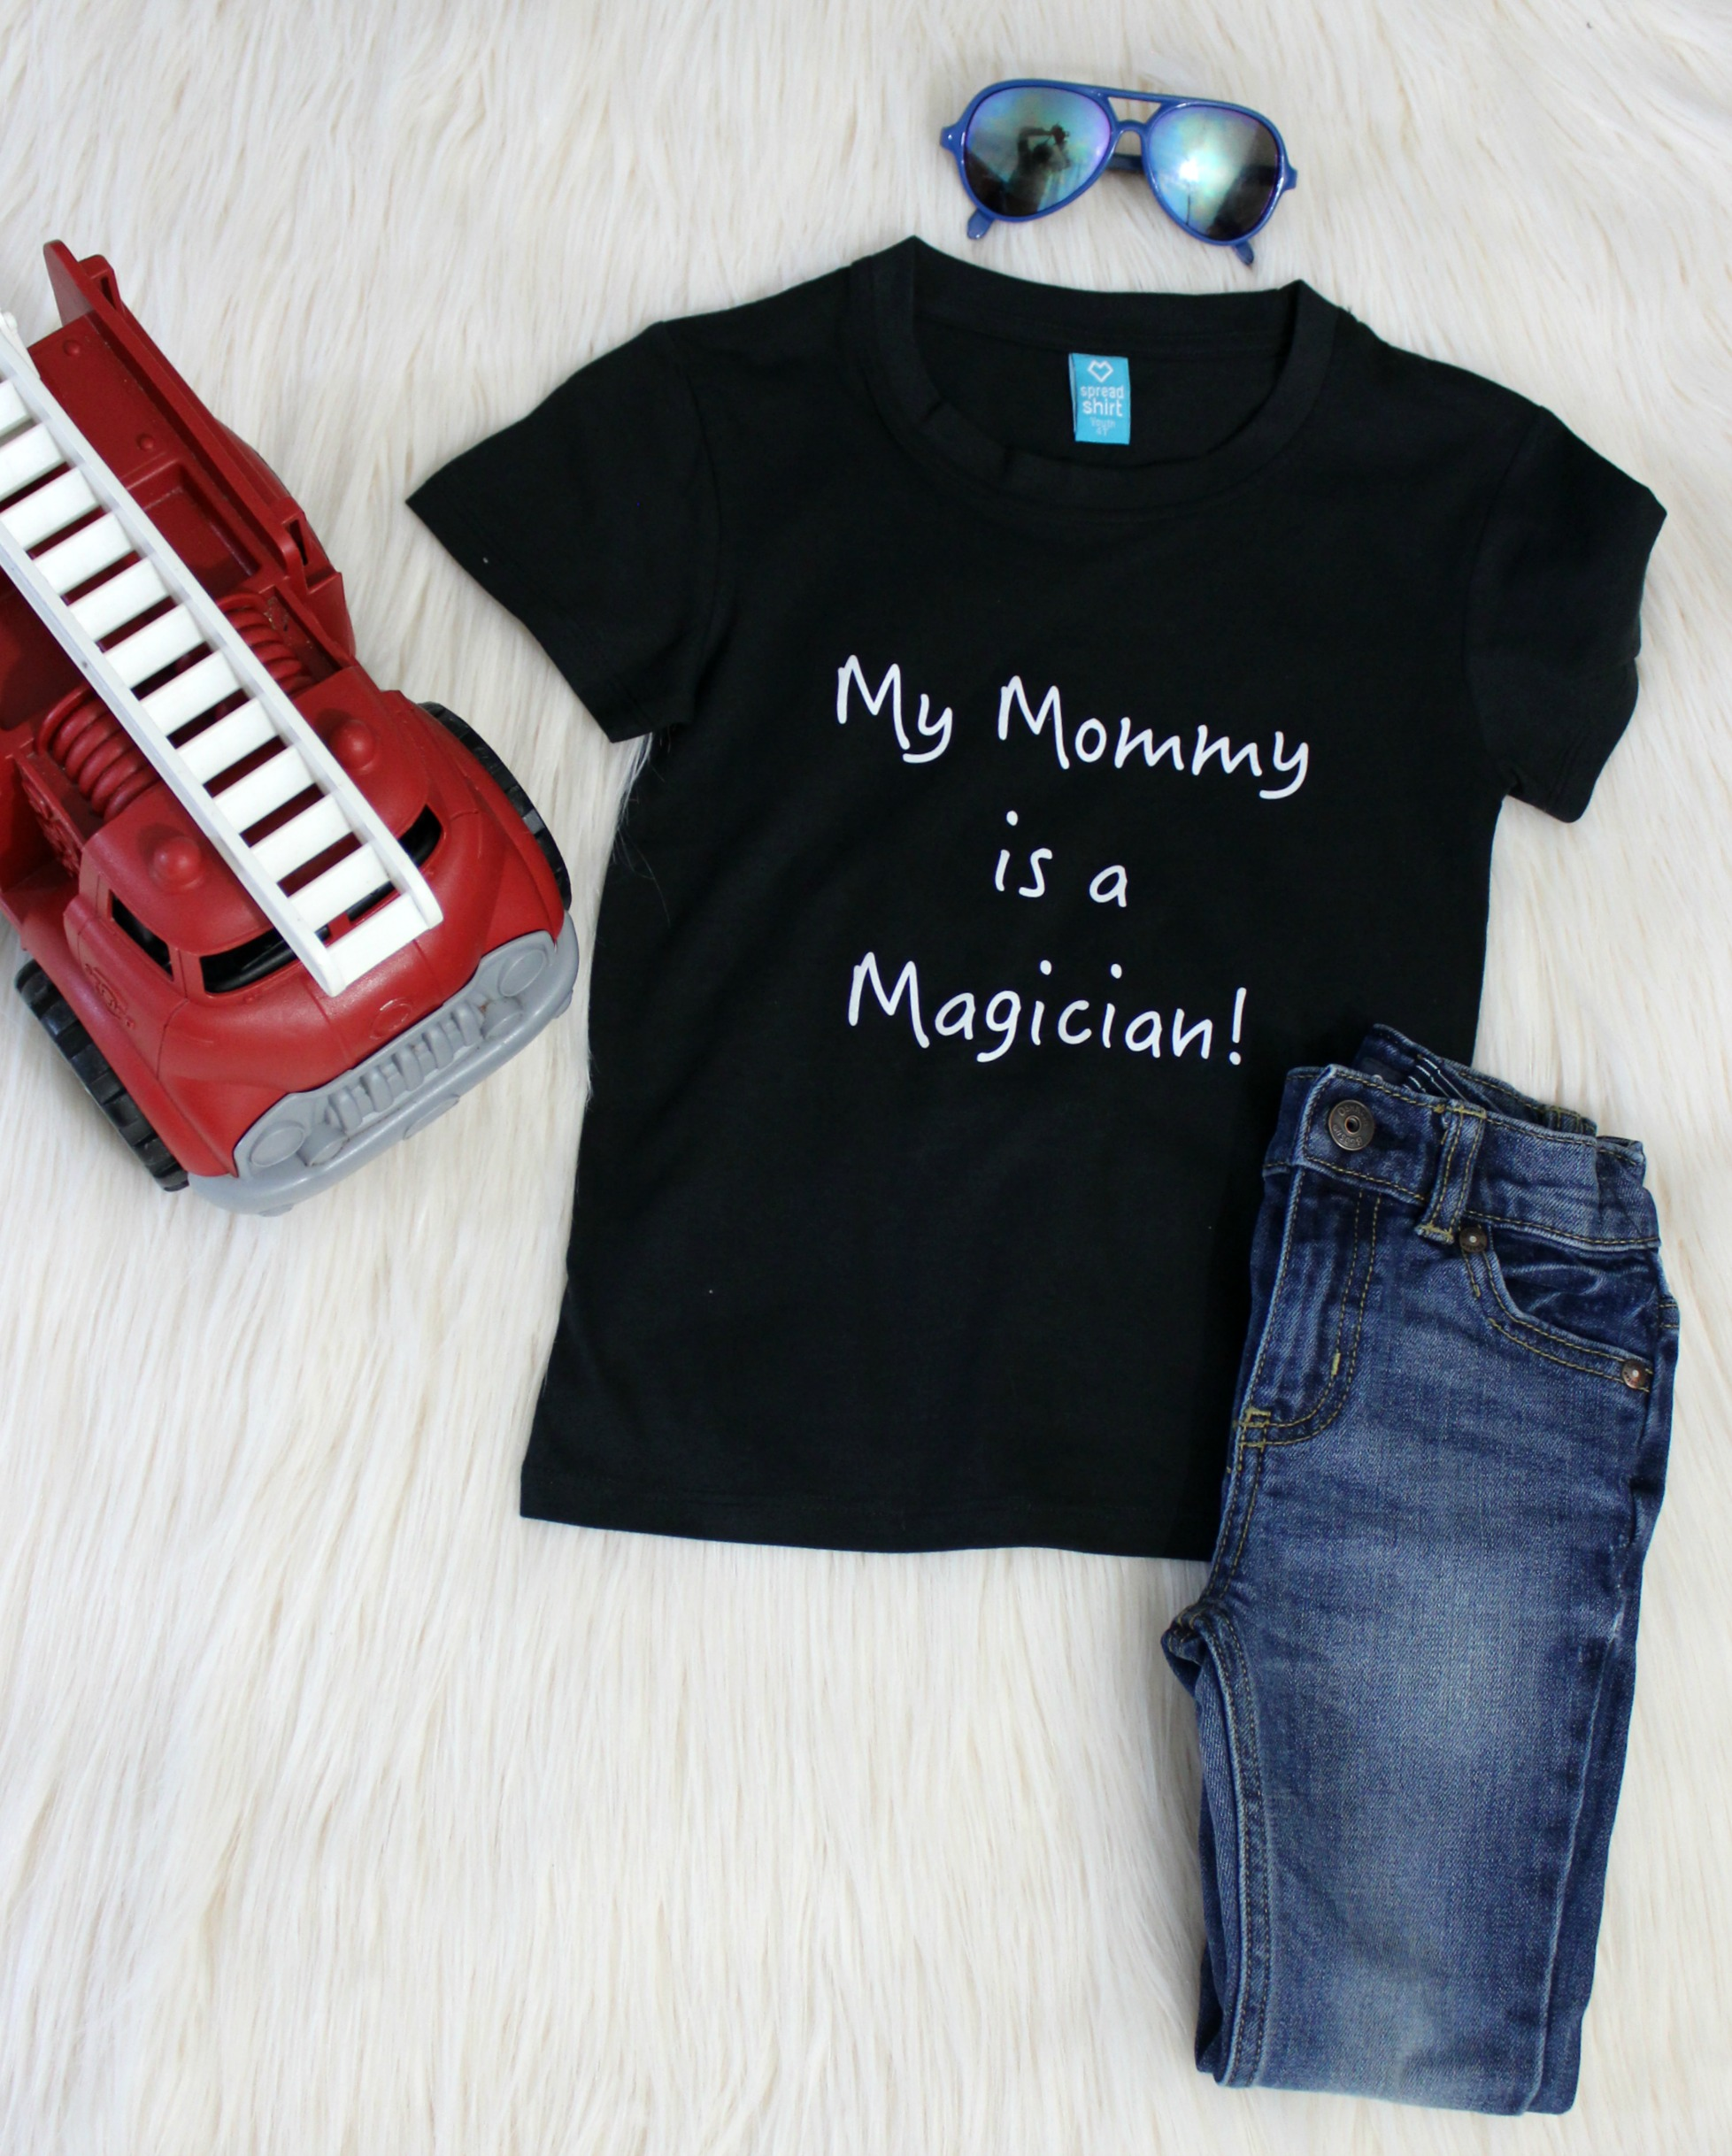 My mommy is a magician shirt